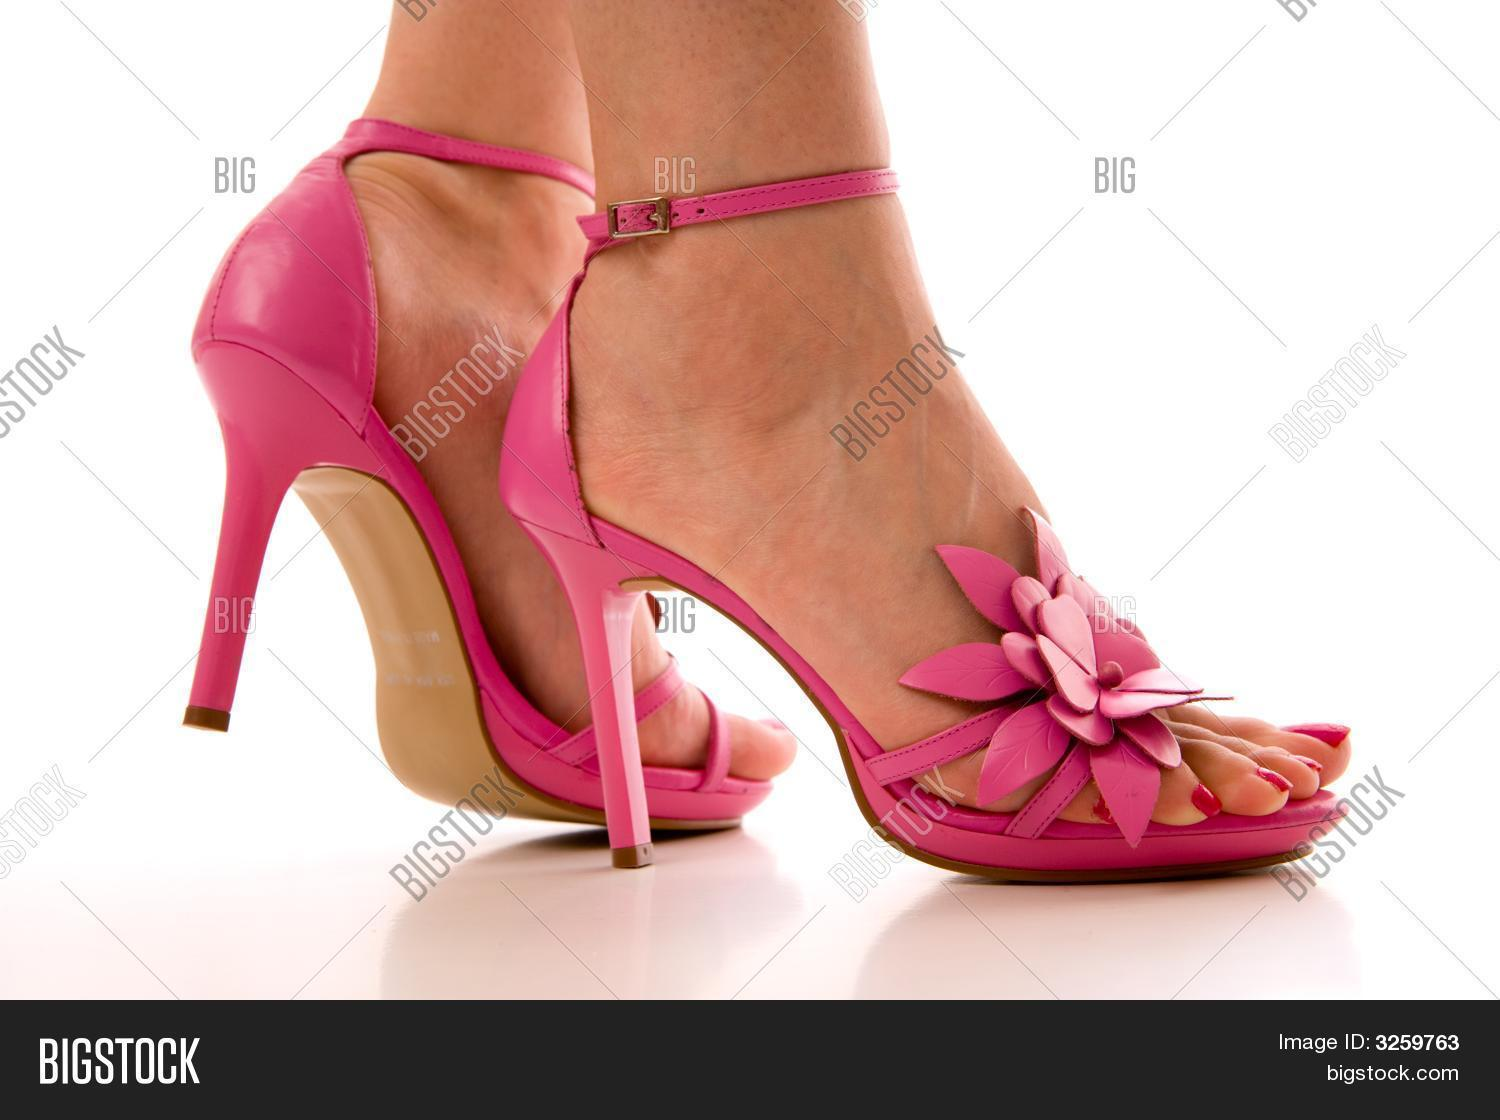 A Woman In Pink High Heel Shoes Stock Photo &amp Stock Images | Bigstock